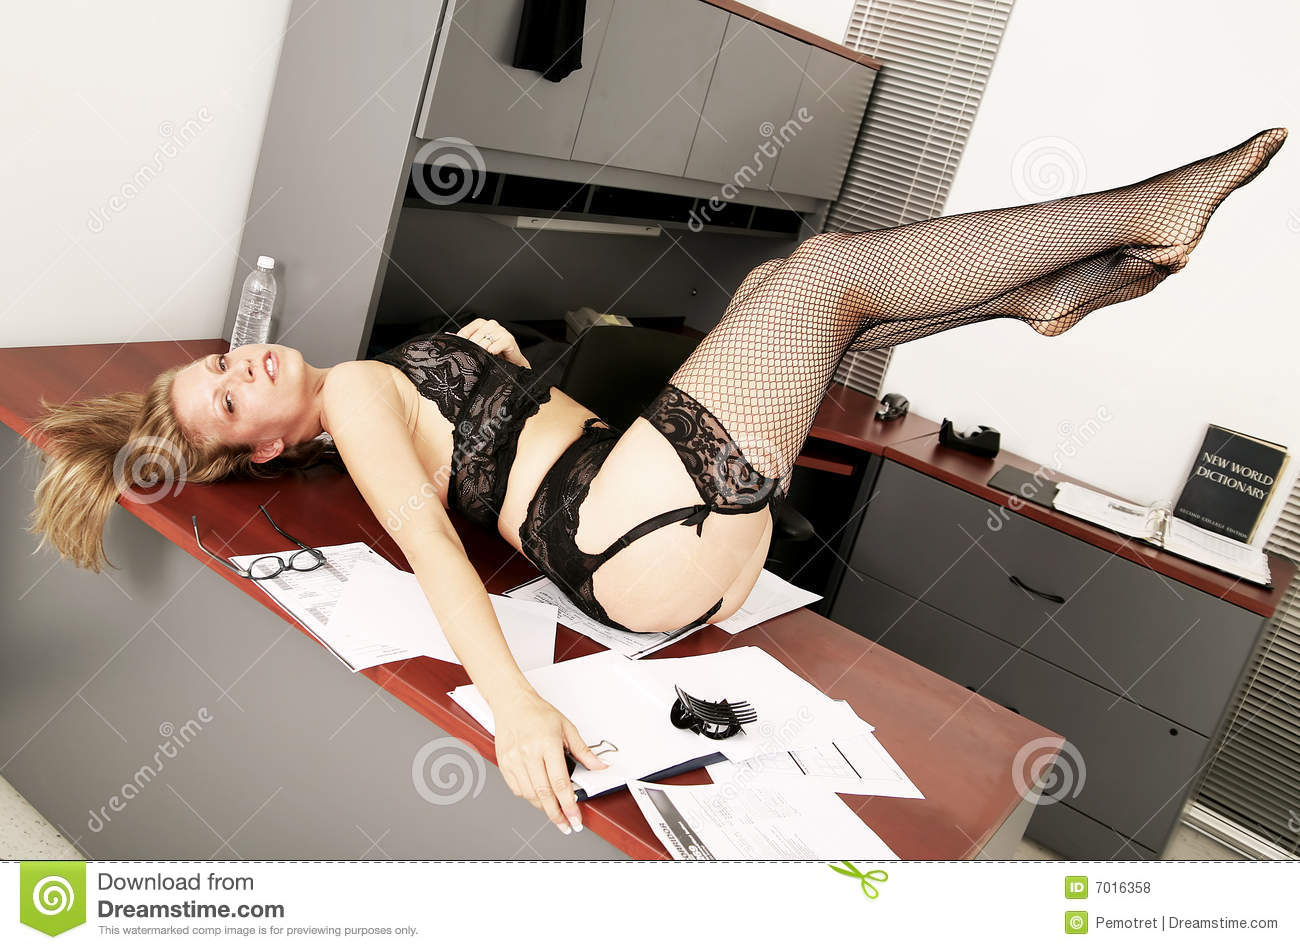 Le Meilleur Secretary Messing On Table Royalty Free Stock Photos Ce Mois Ci